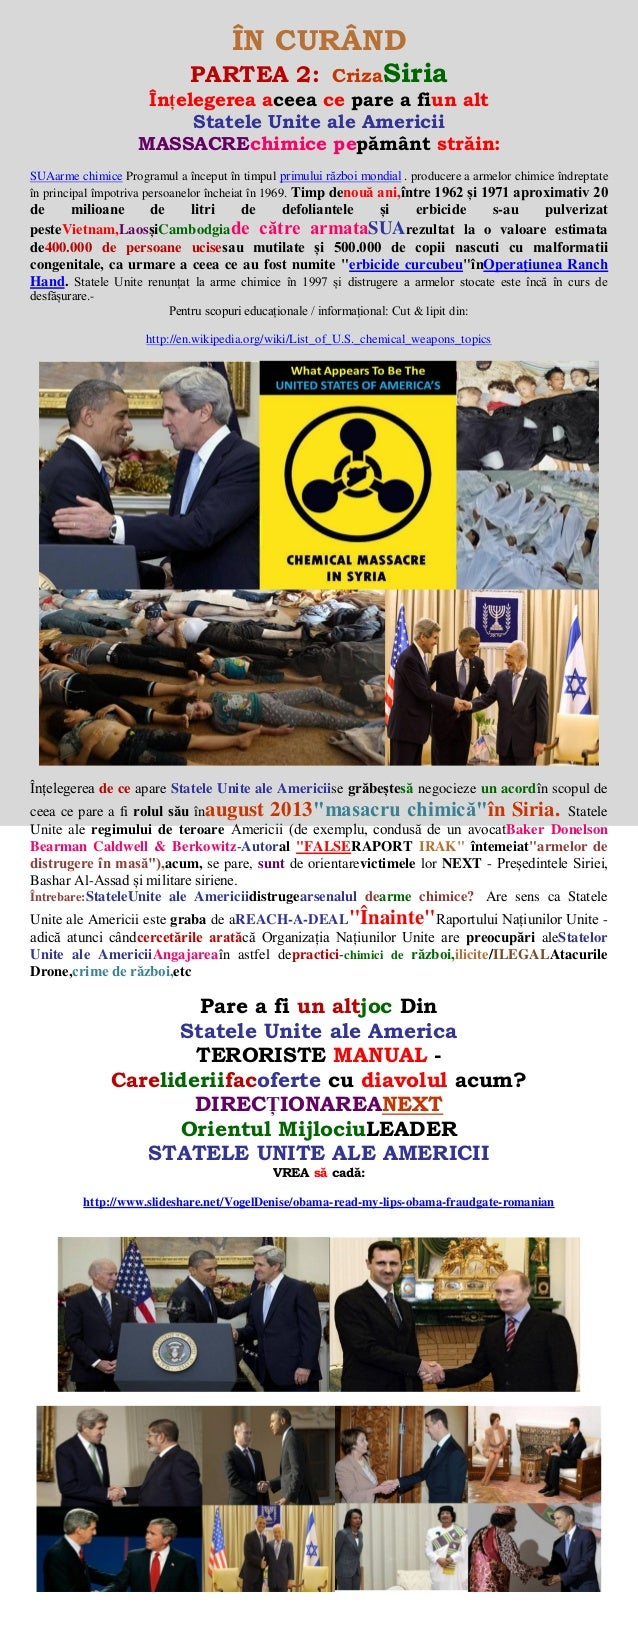 SYRIA CRISIS - (USA) CHEMICAL WEAPONS ATTACK(romanian)